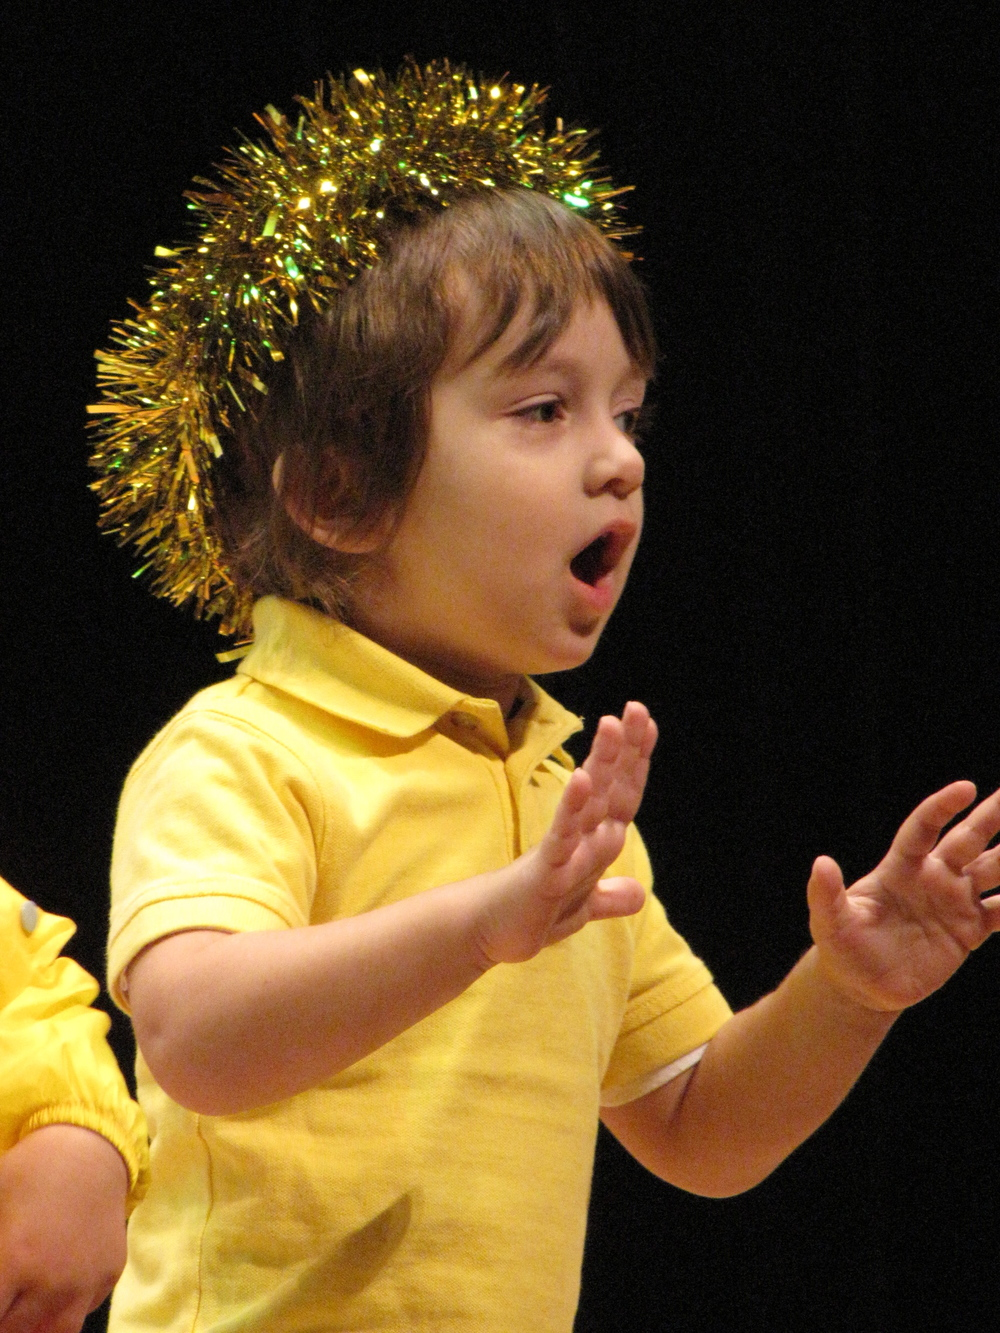 "Charlie singing ""Twinkle, Twinkle Little Star"" at a Christmas concert at the age of 2.5."